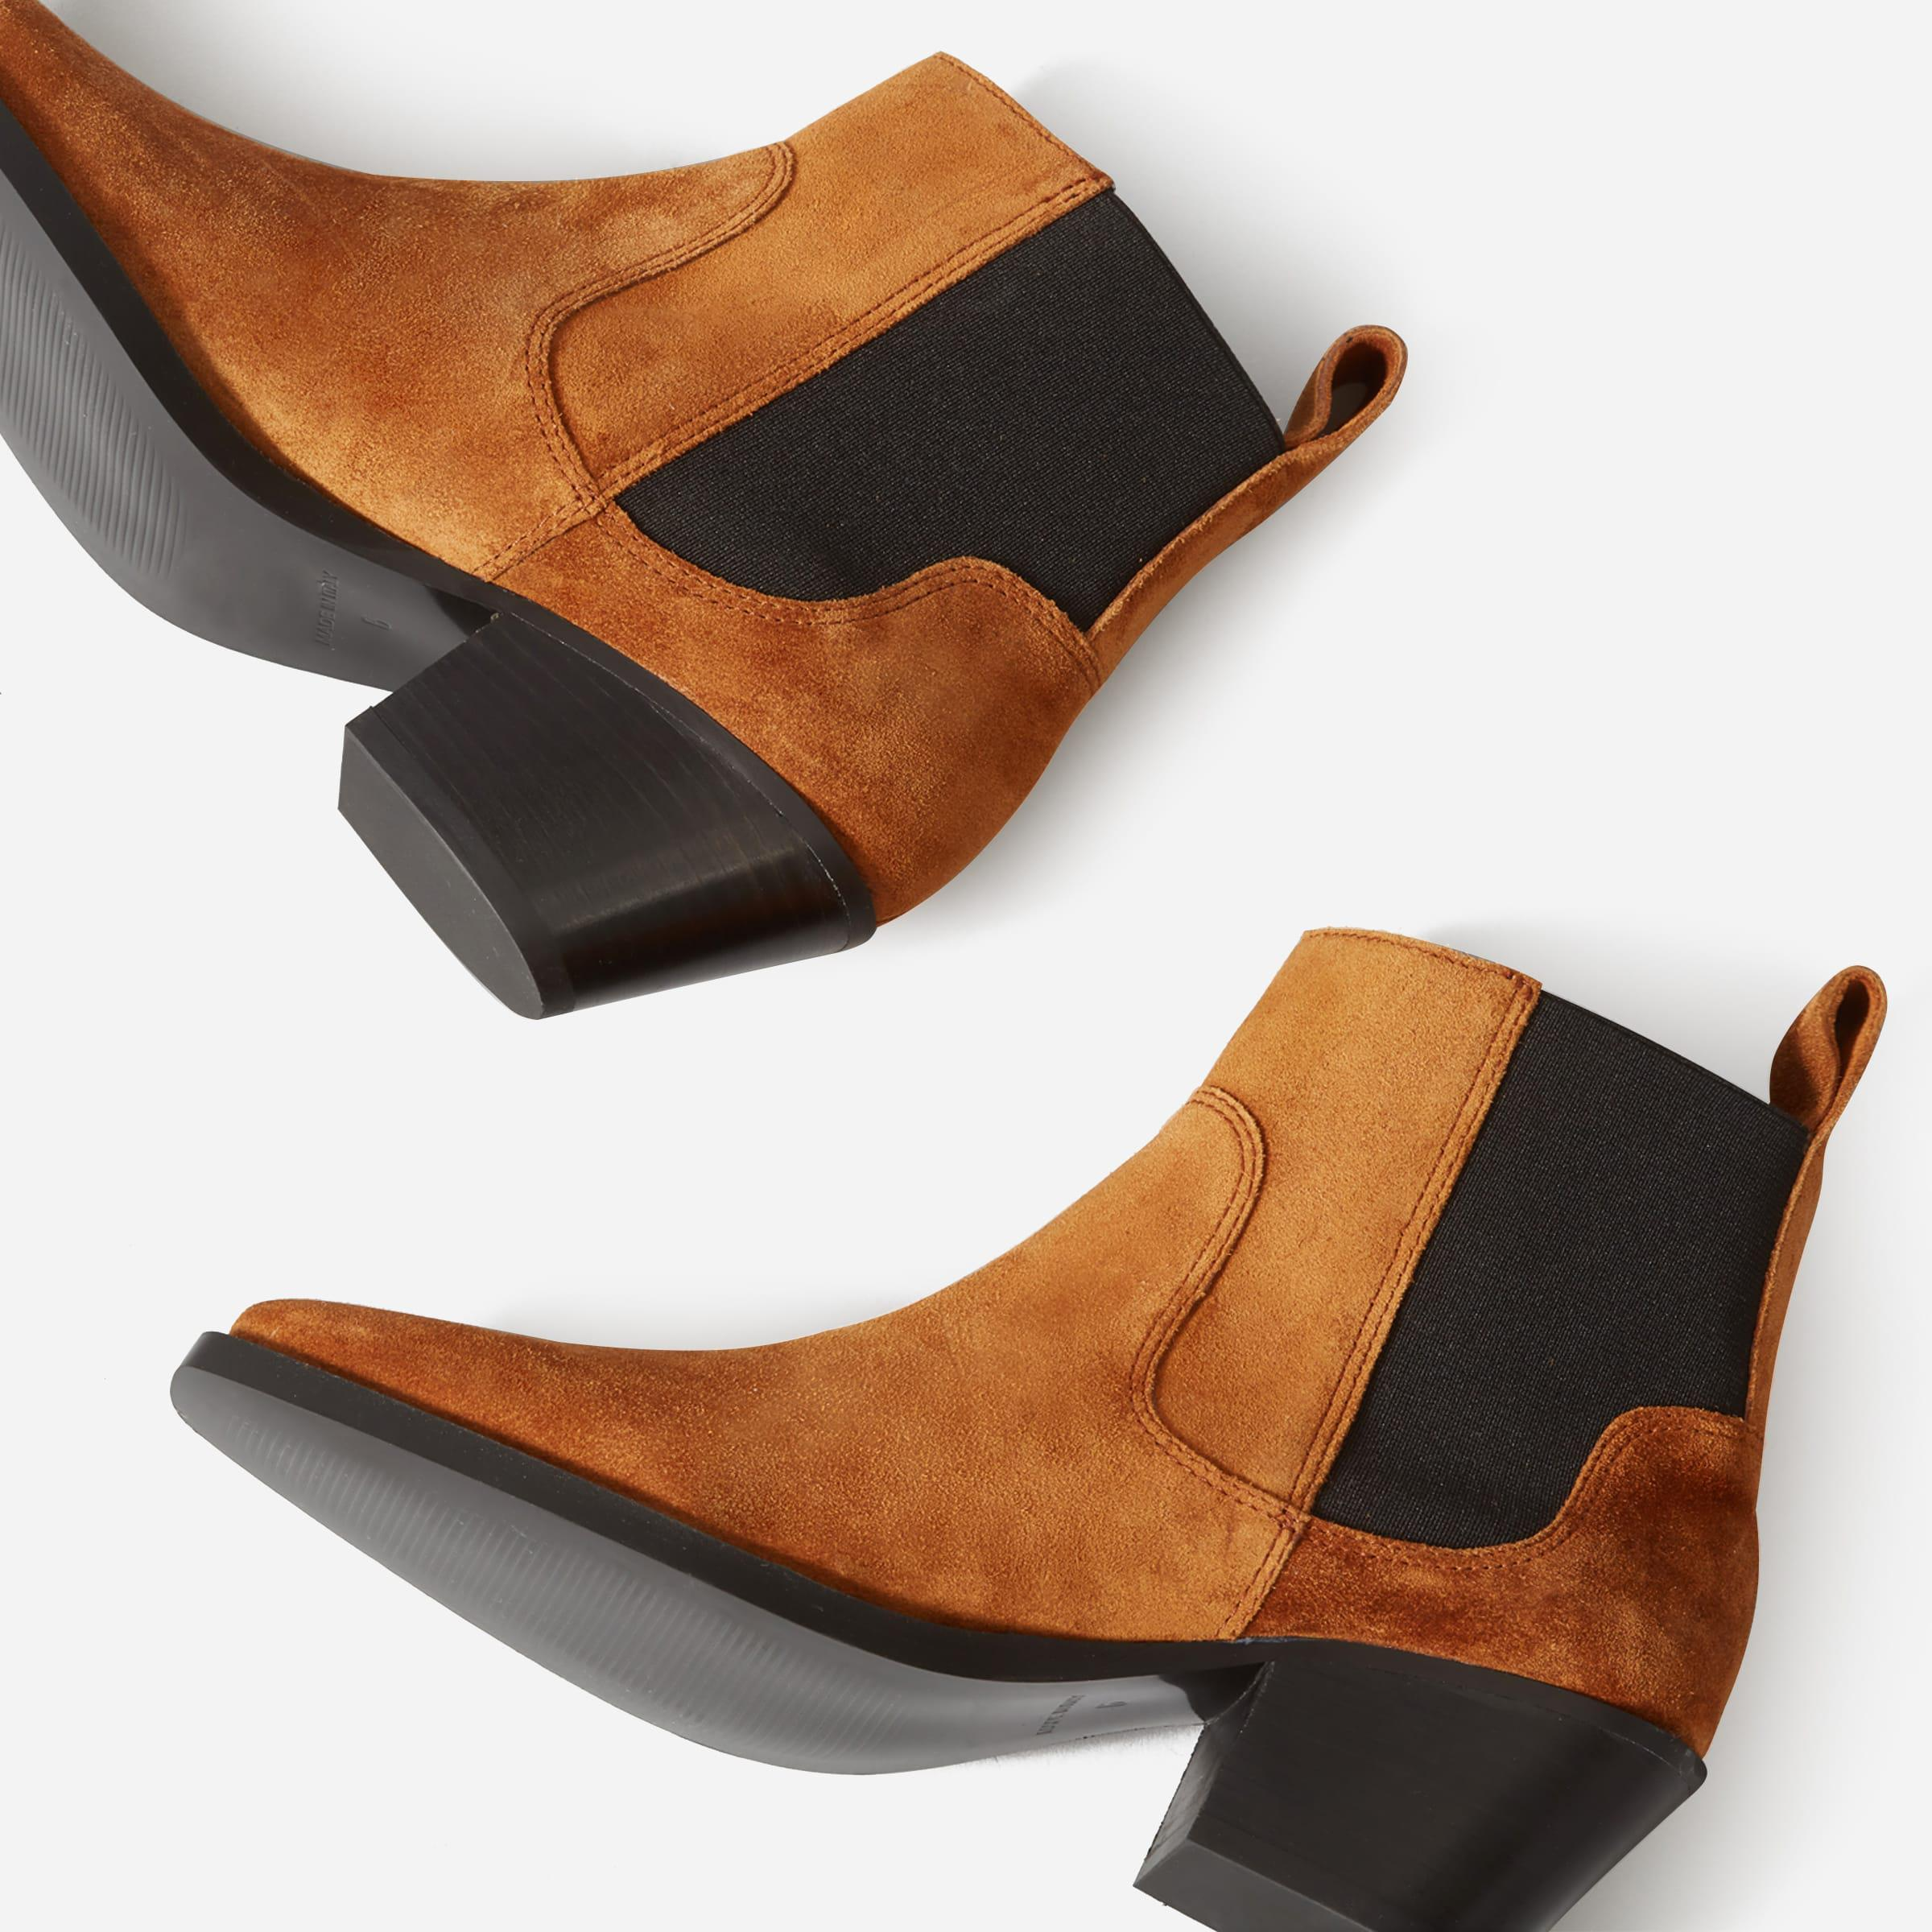 The Western Boot 3